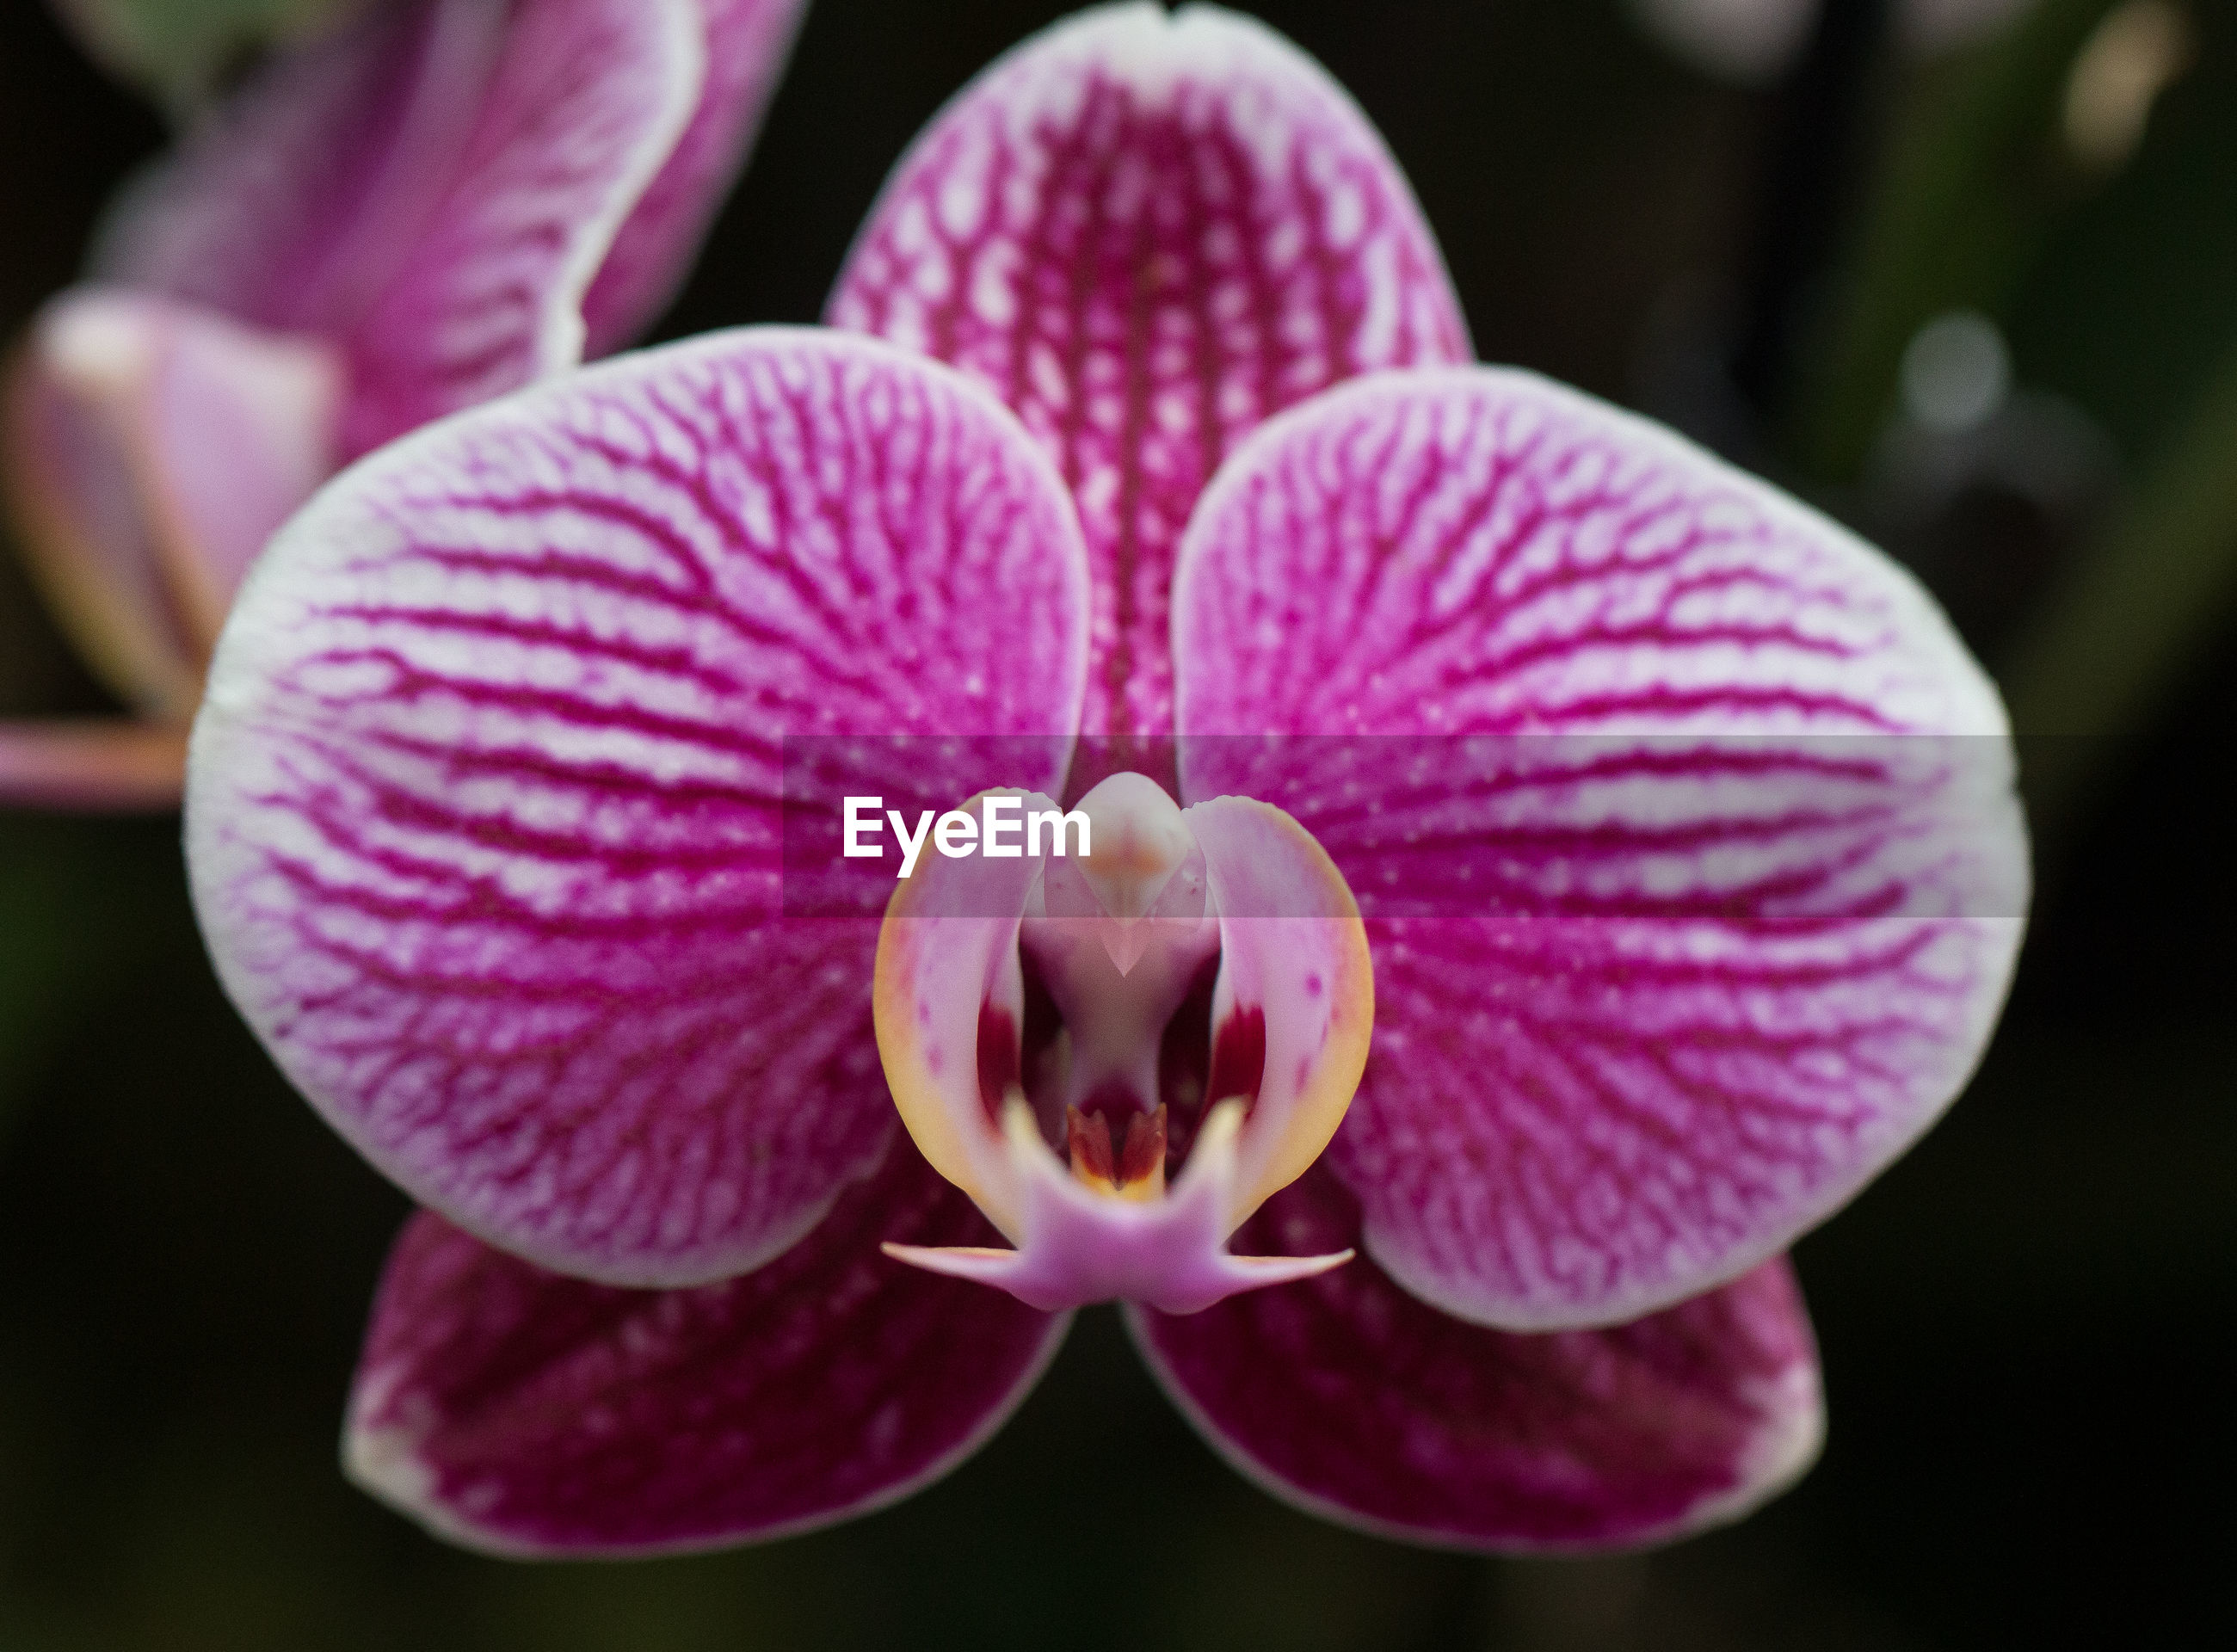 CLOSE-UP OF PINK ORCHID FLOWER